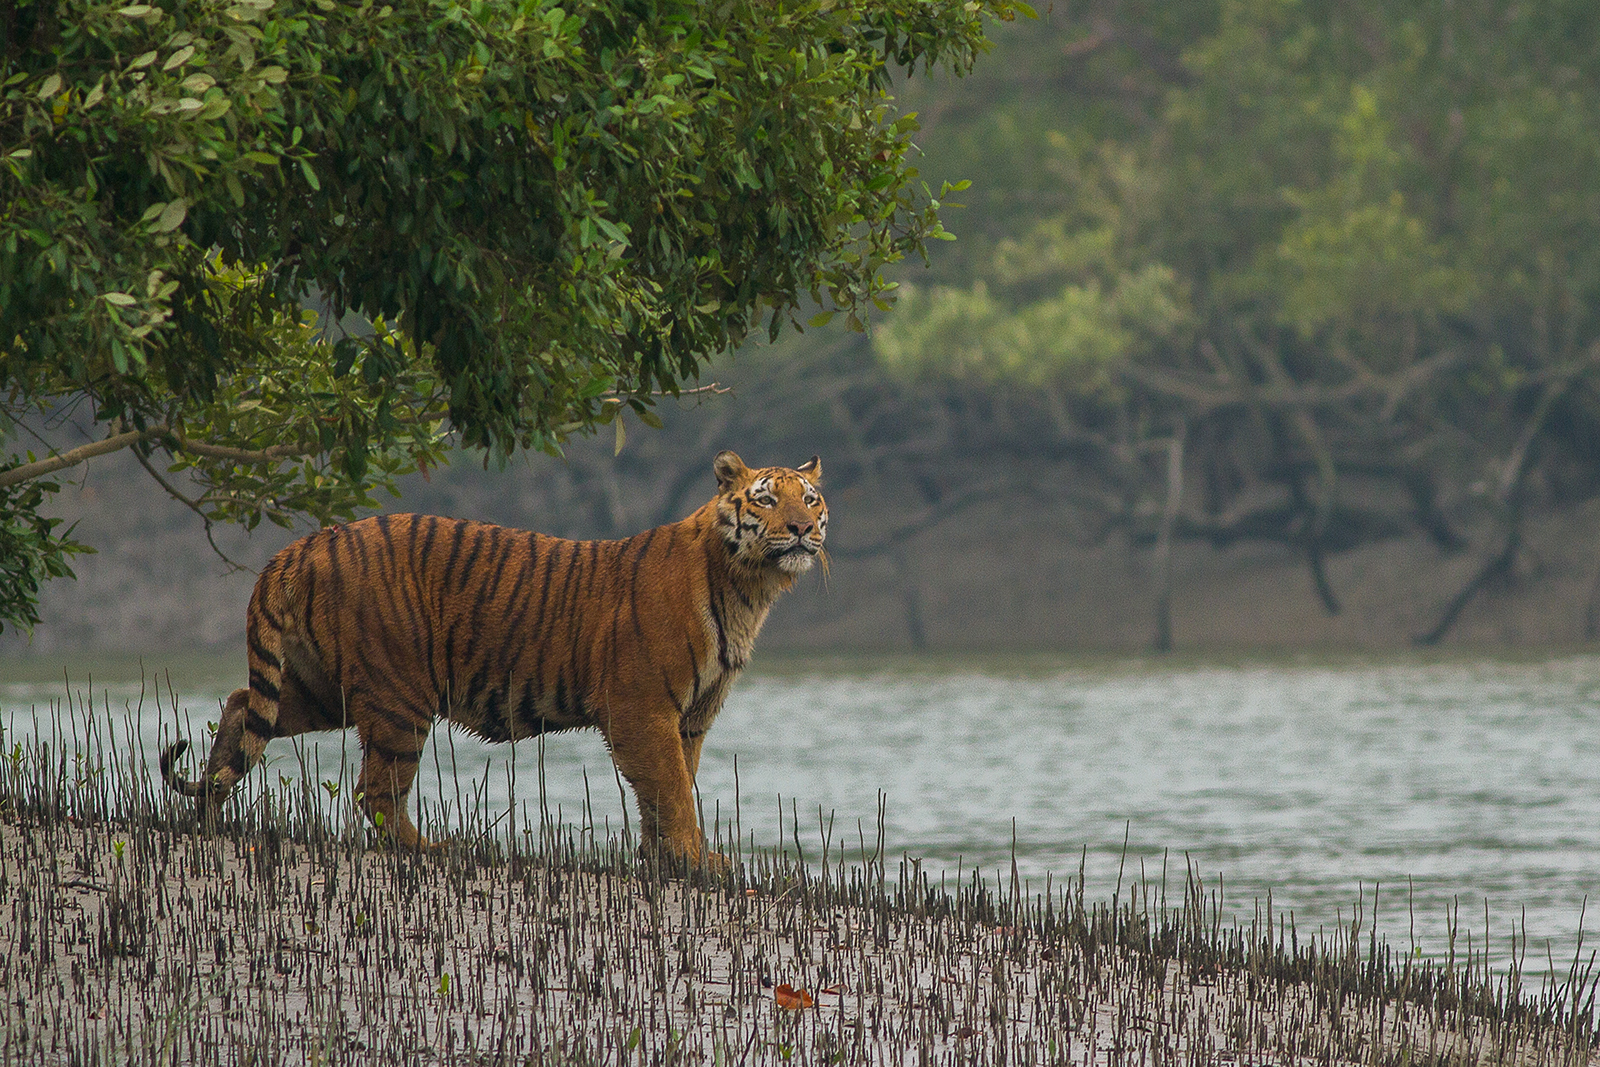 Sundarbans - Worthy Places to Visit Every Tourist in West Bengal